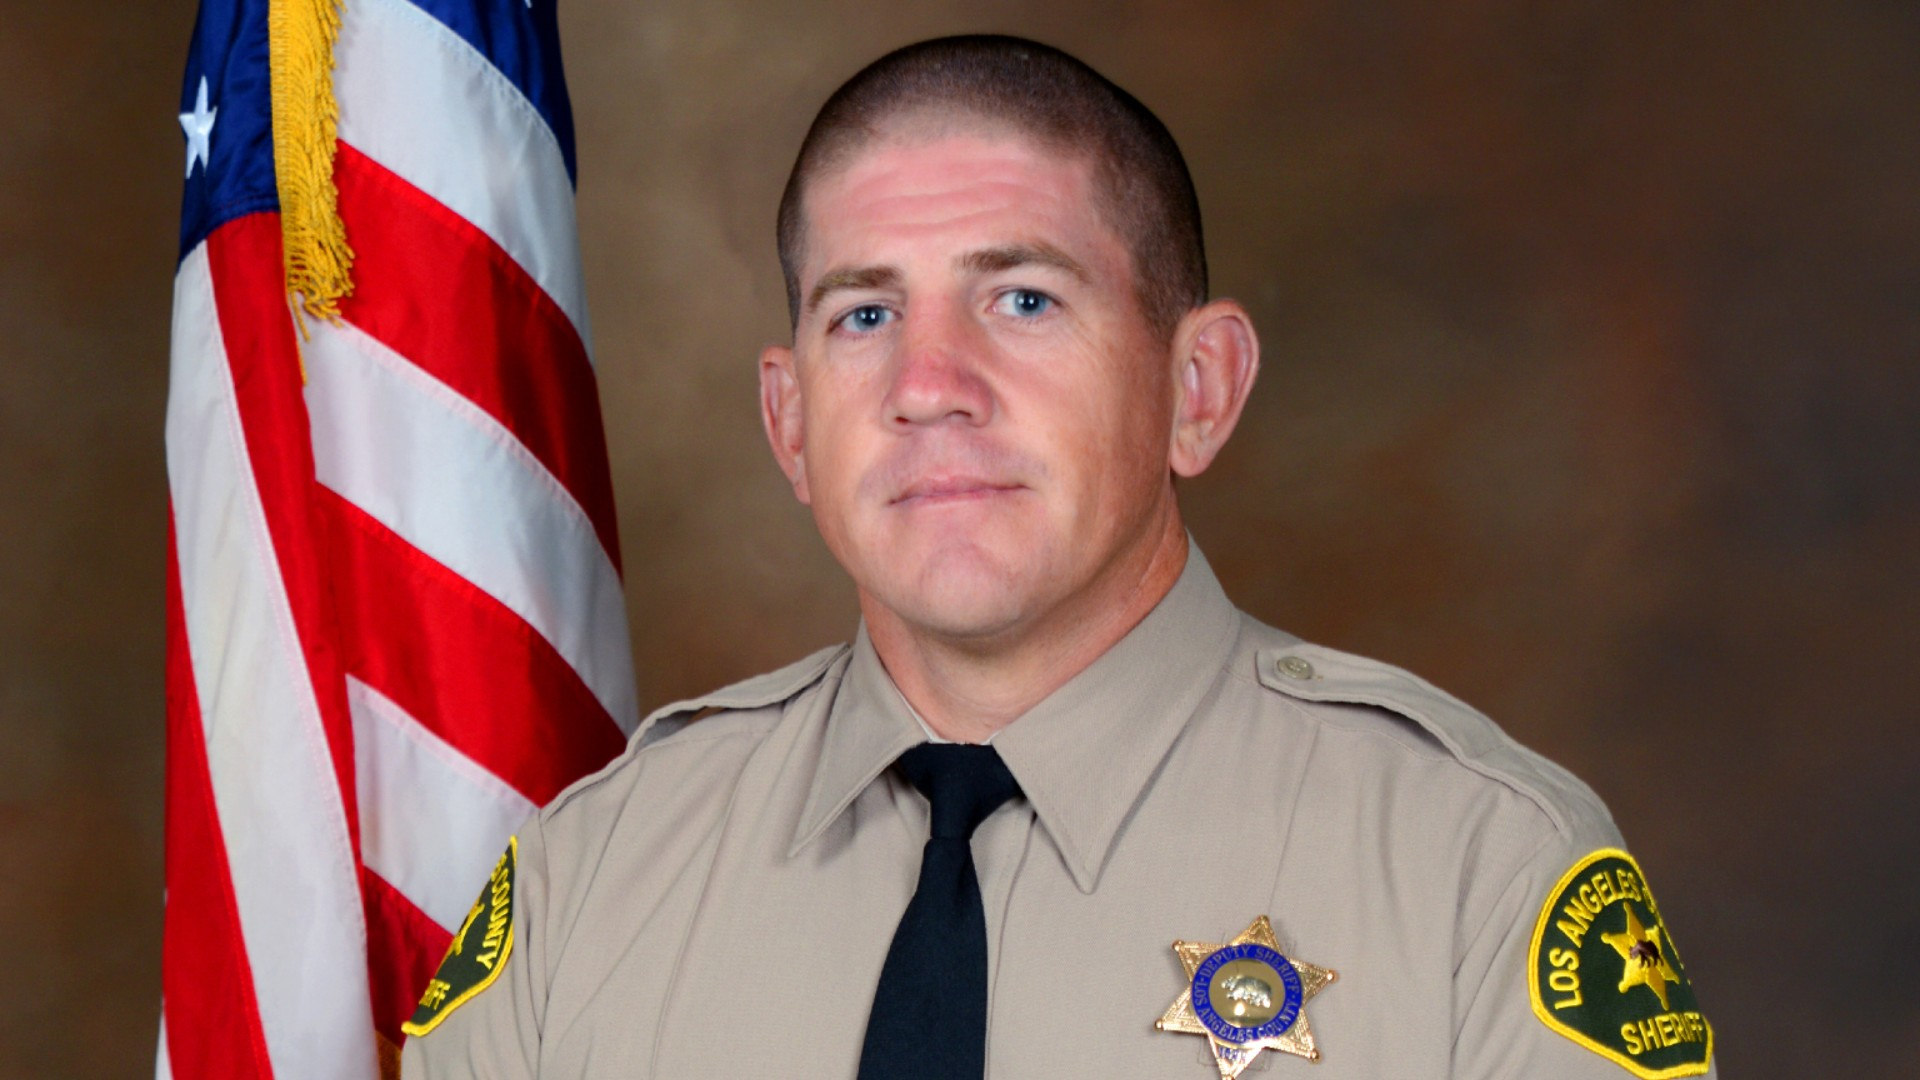 Deputy Thomas Albanese is seen in a photo released by the L.A. County Sheriff's Department.